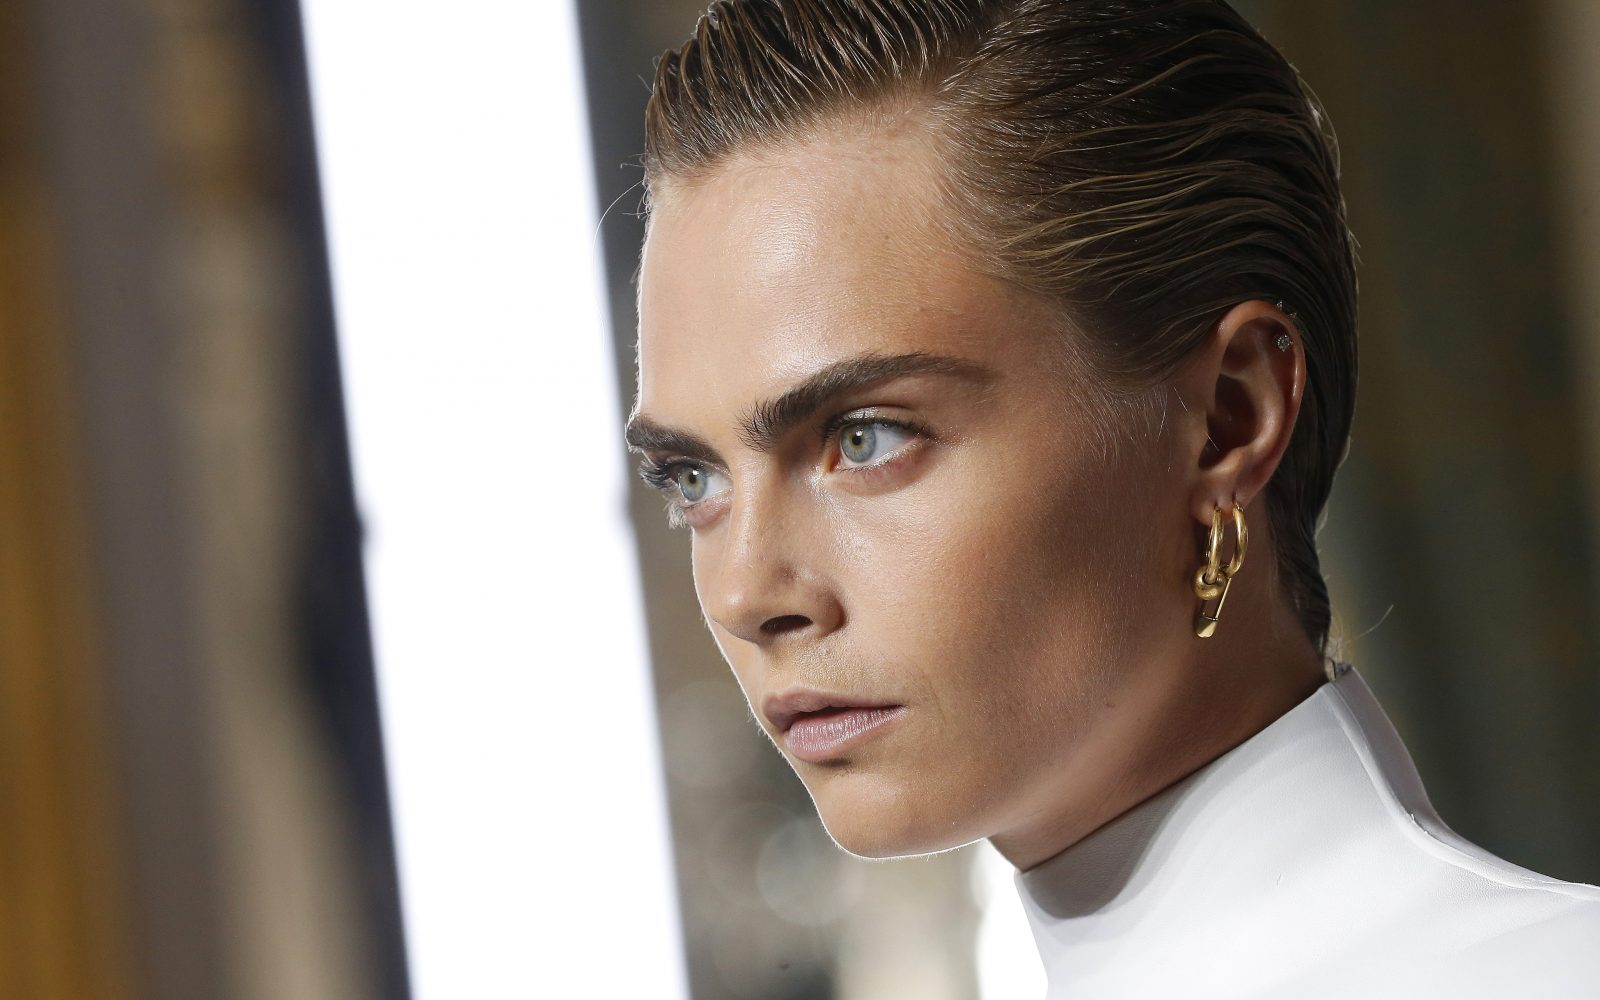 Soap Brows Will Give You Cara Delevingne Inspired Eyebrows